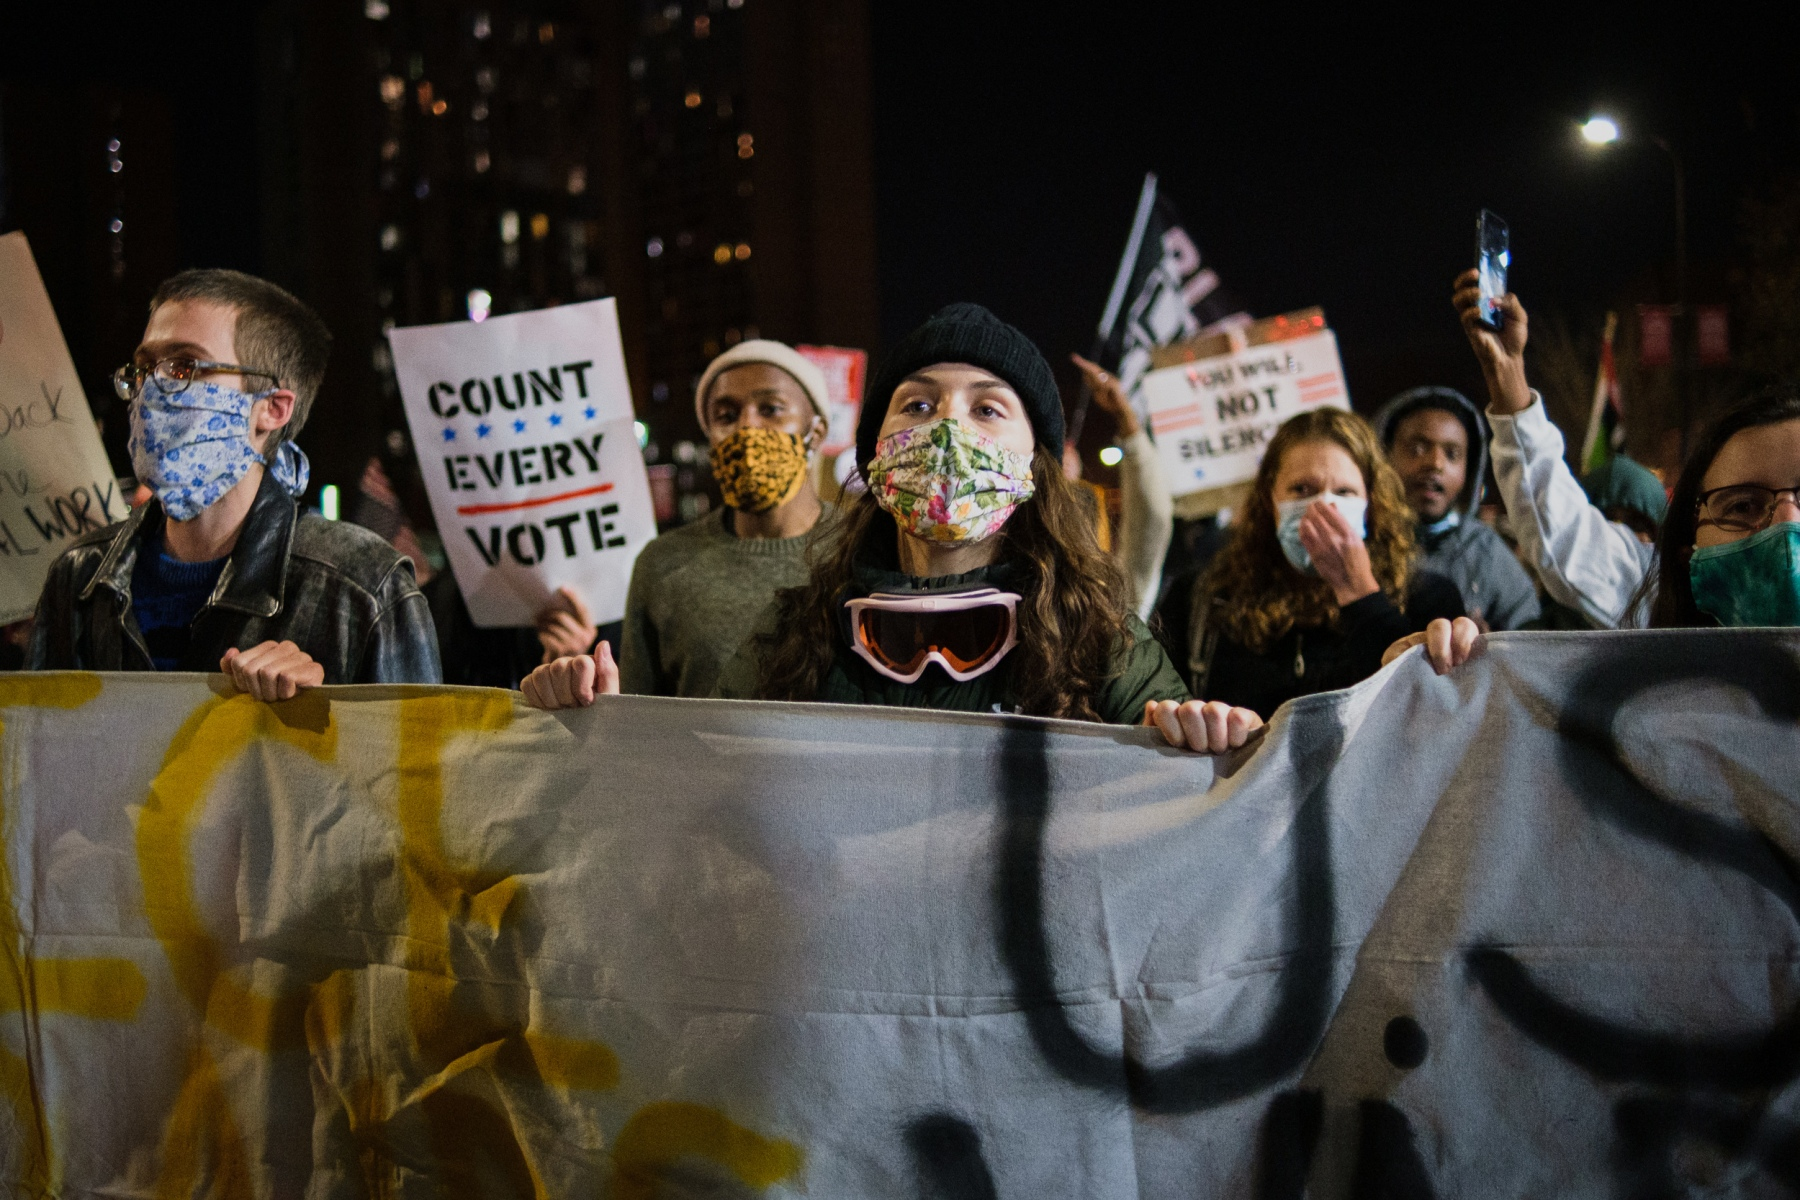 More than 600 protestors march through Minneapolis to demand all votes be counted in the 2020 presidential election on November 4, 2020, just one day after Election Day.